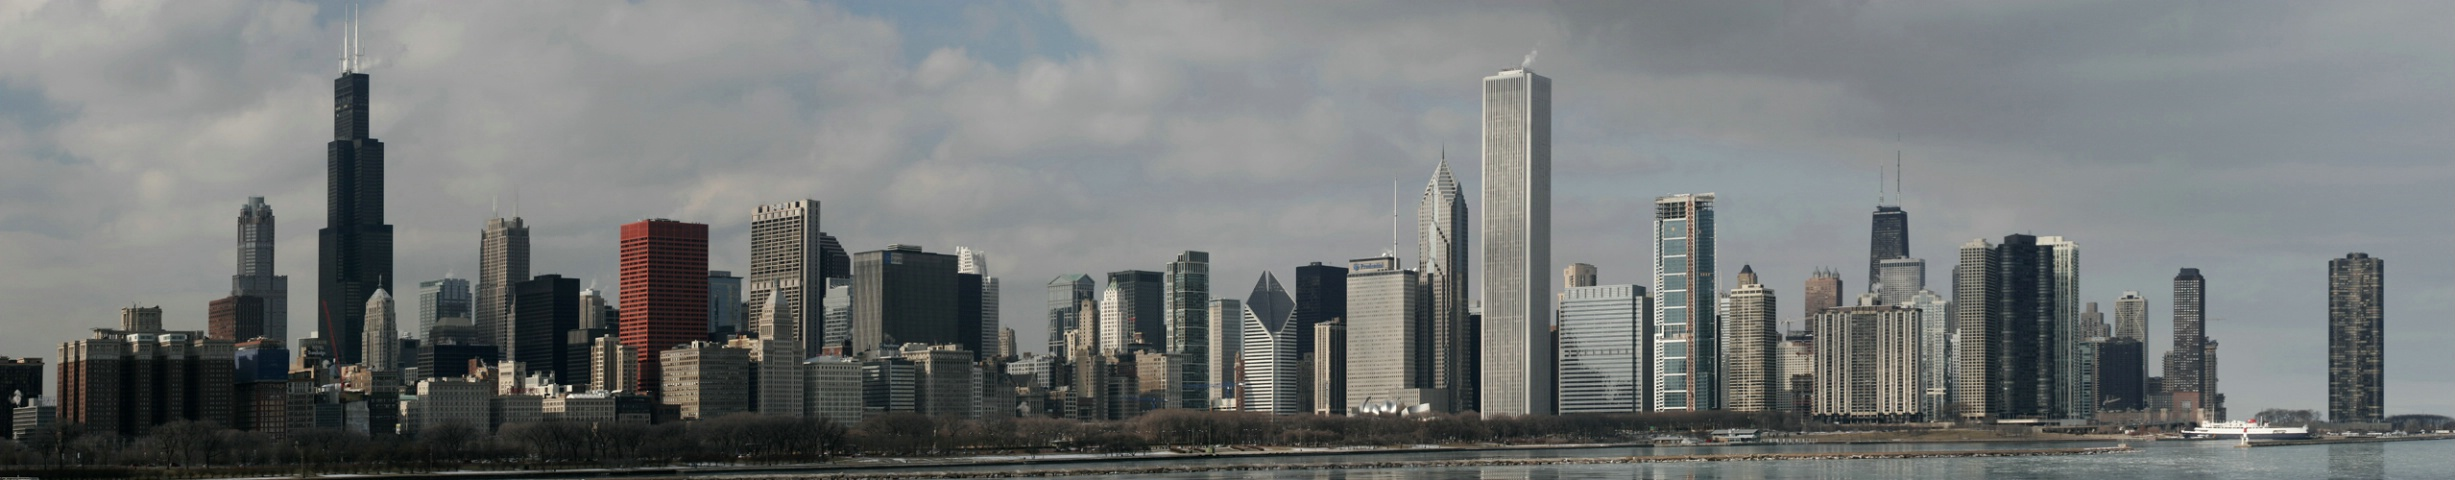 Wintery Windy City Afternoon Cityscape